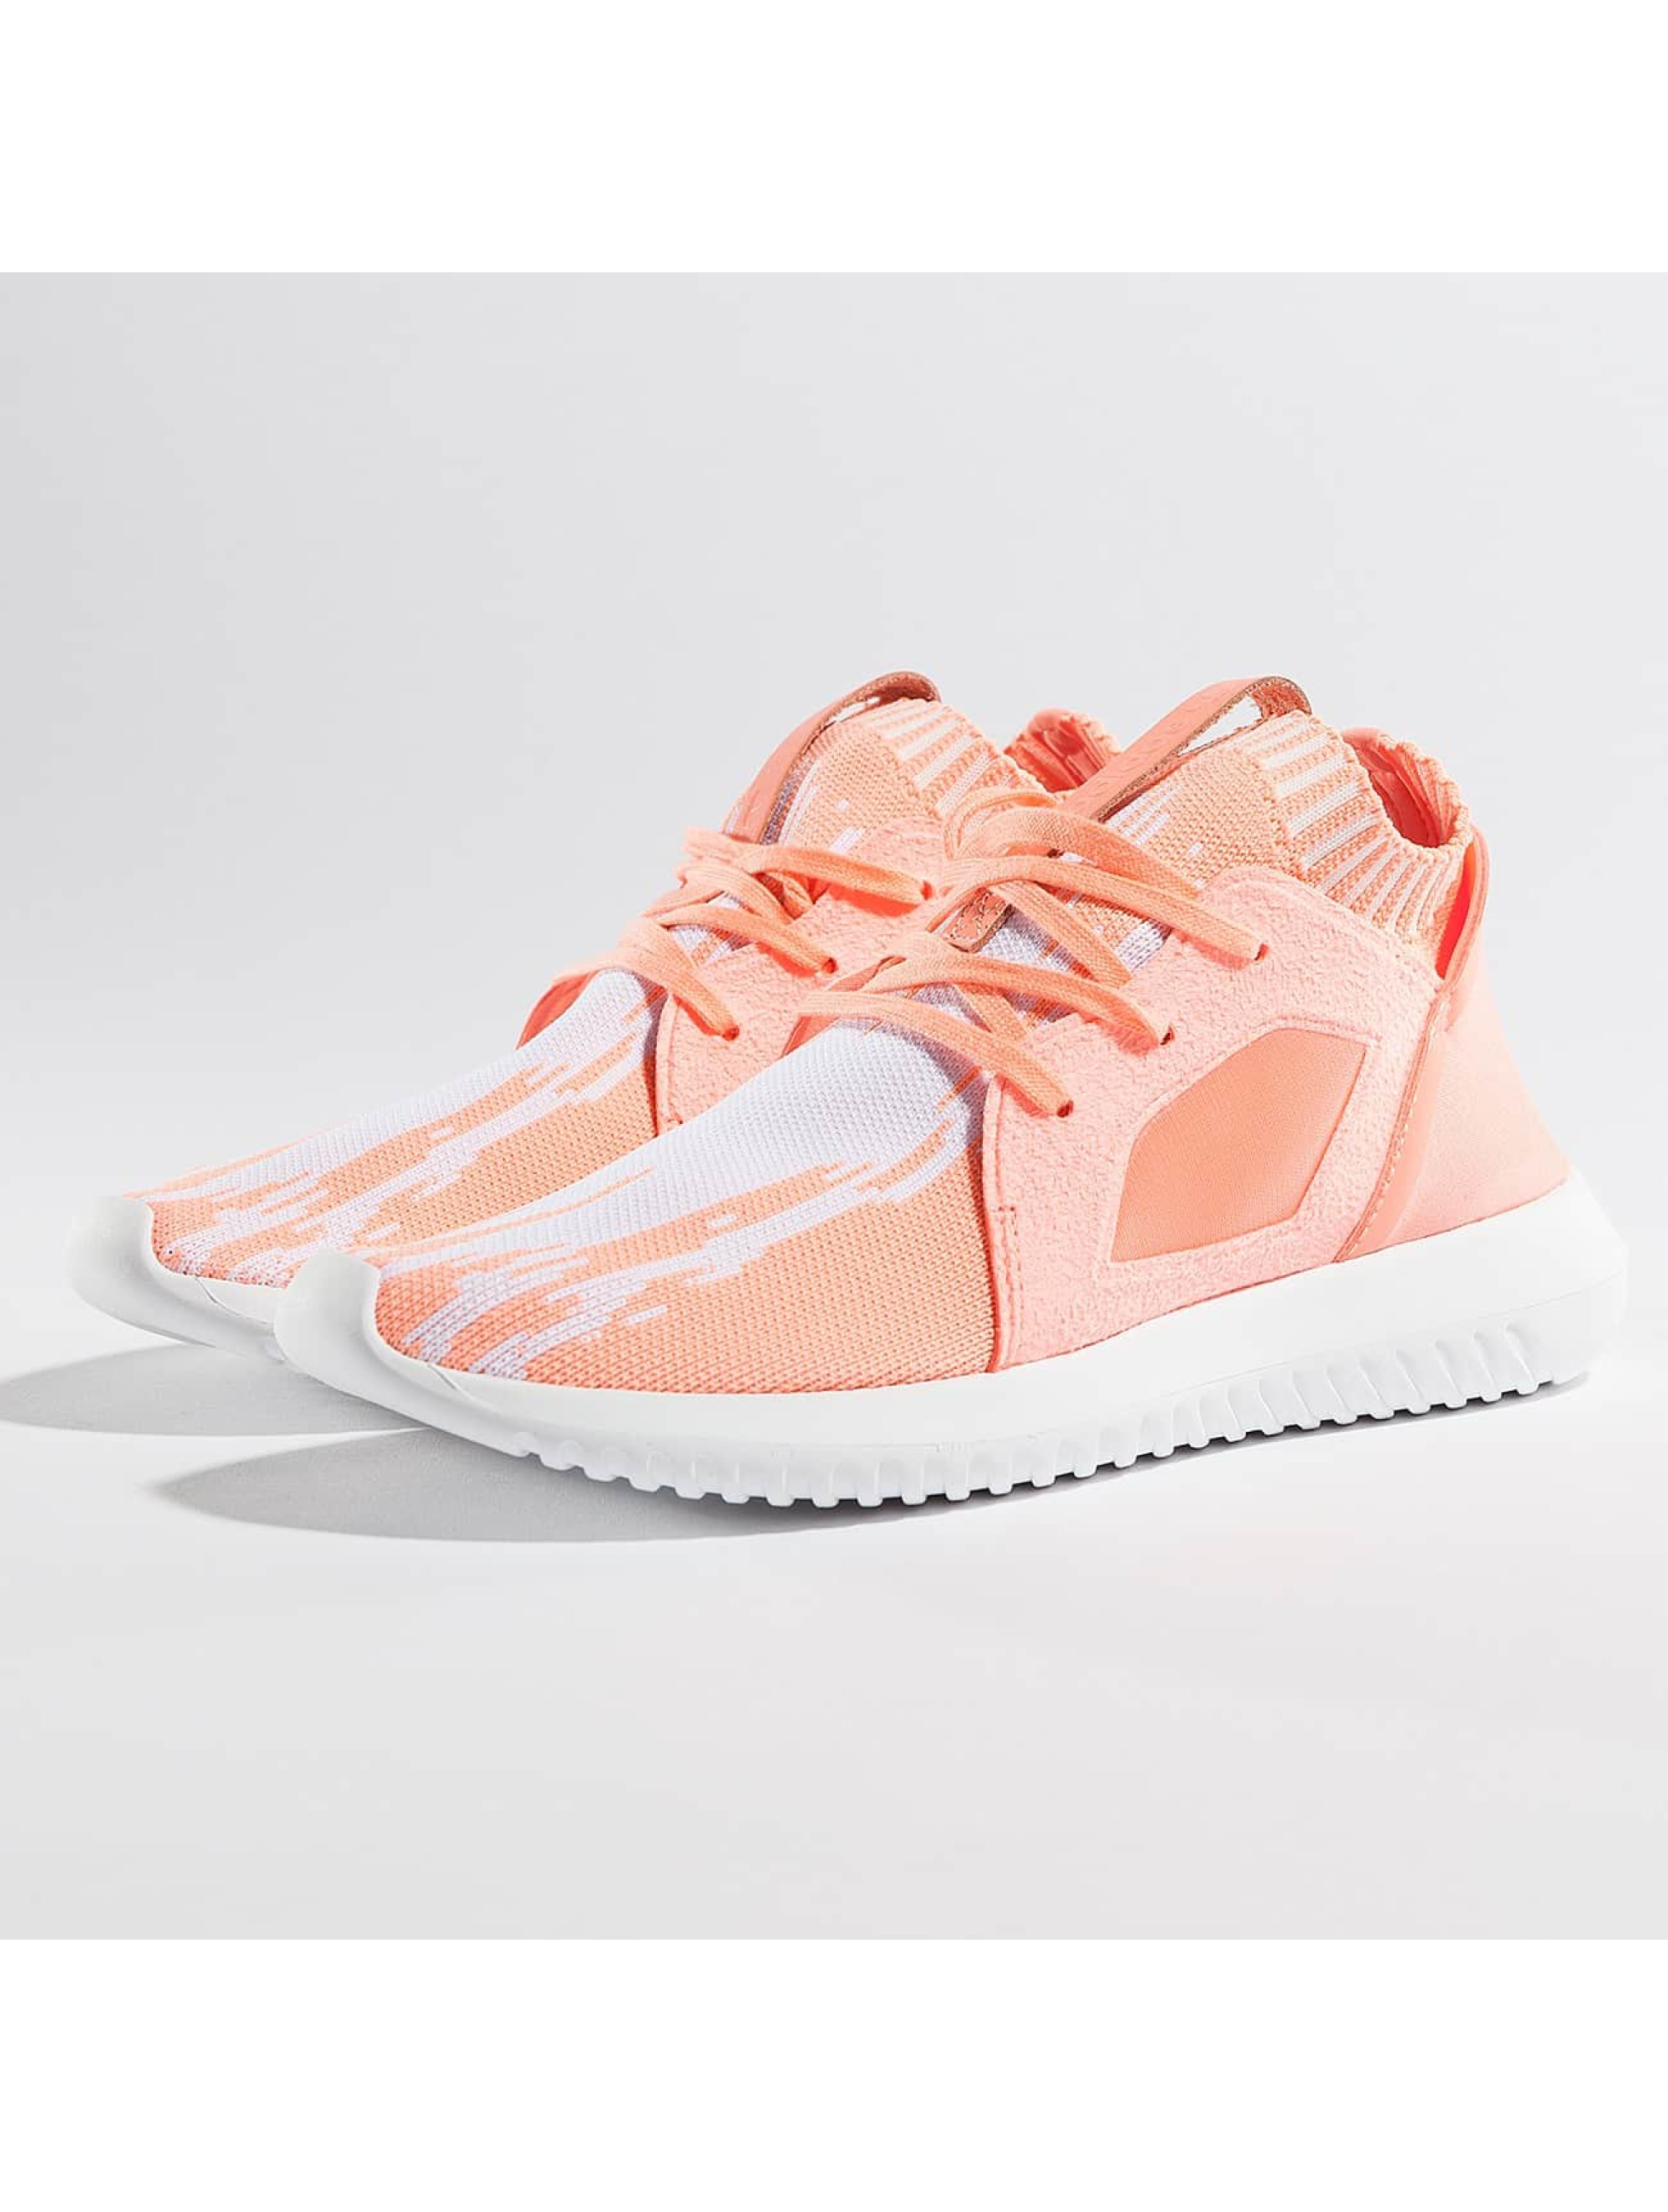 adidas Frauen Sneaker Tubular Defiant PK W in orange